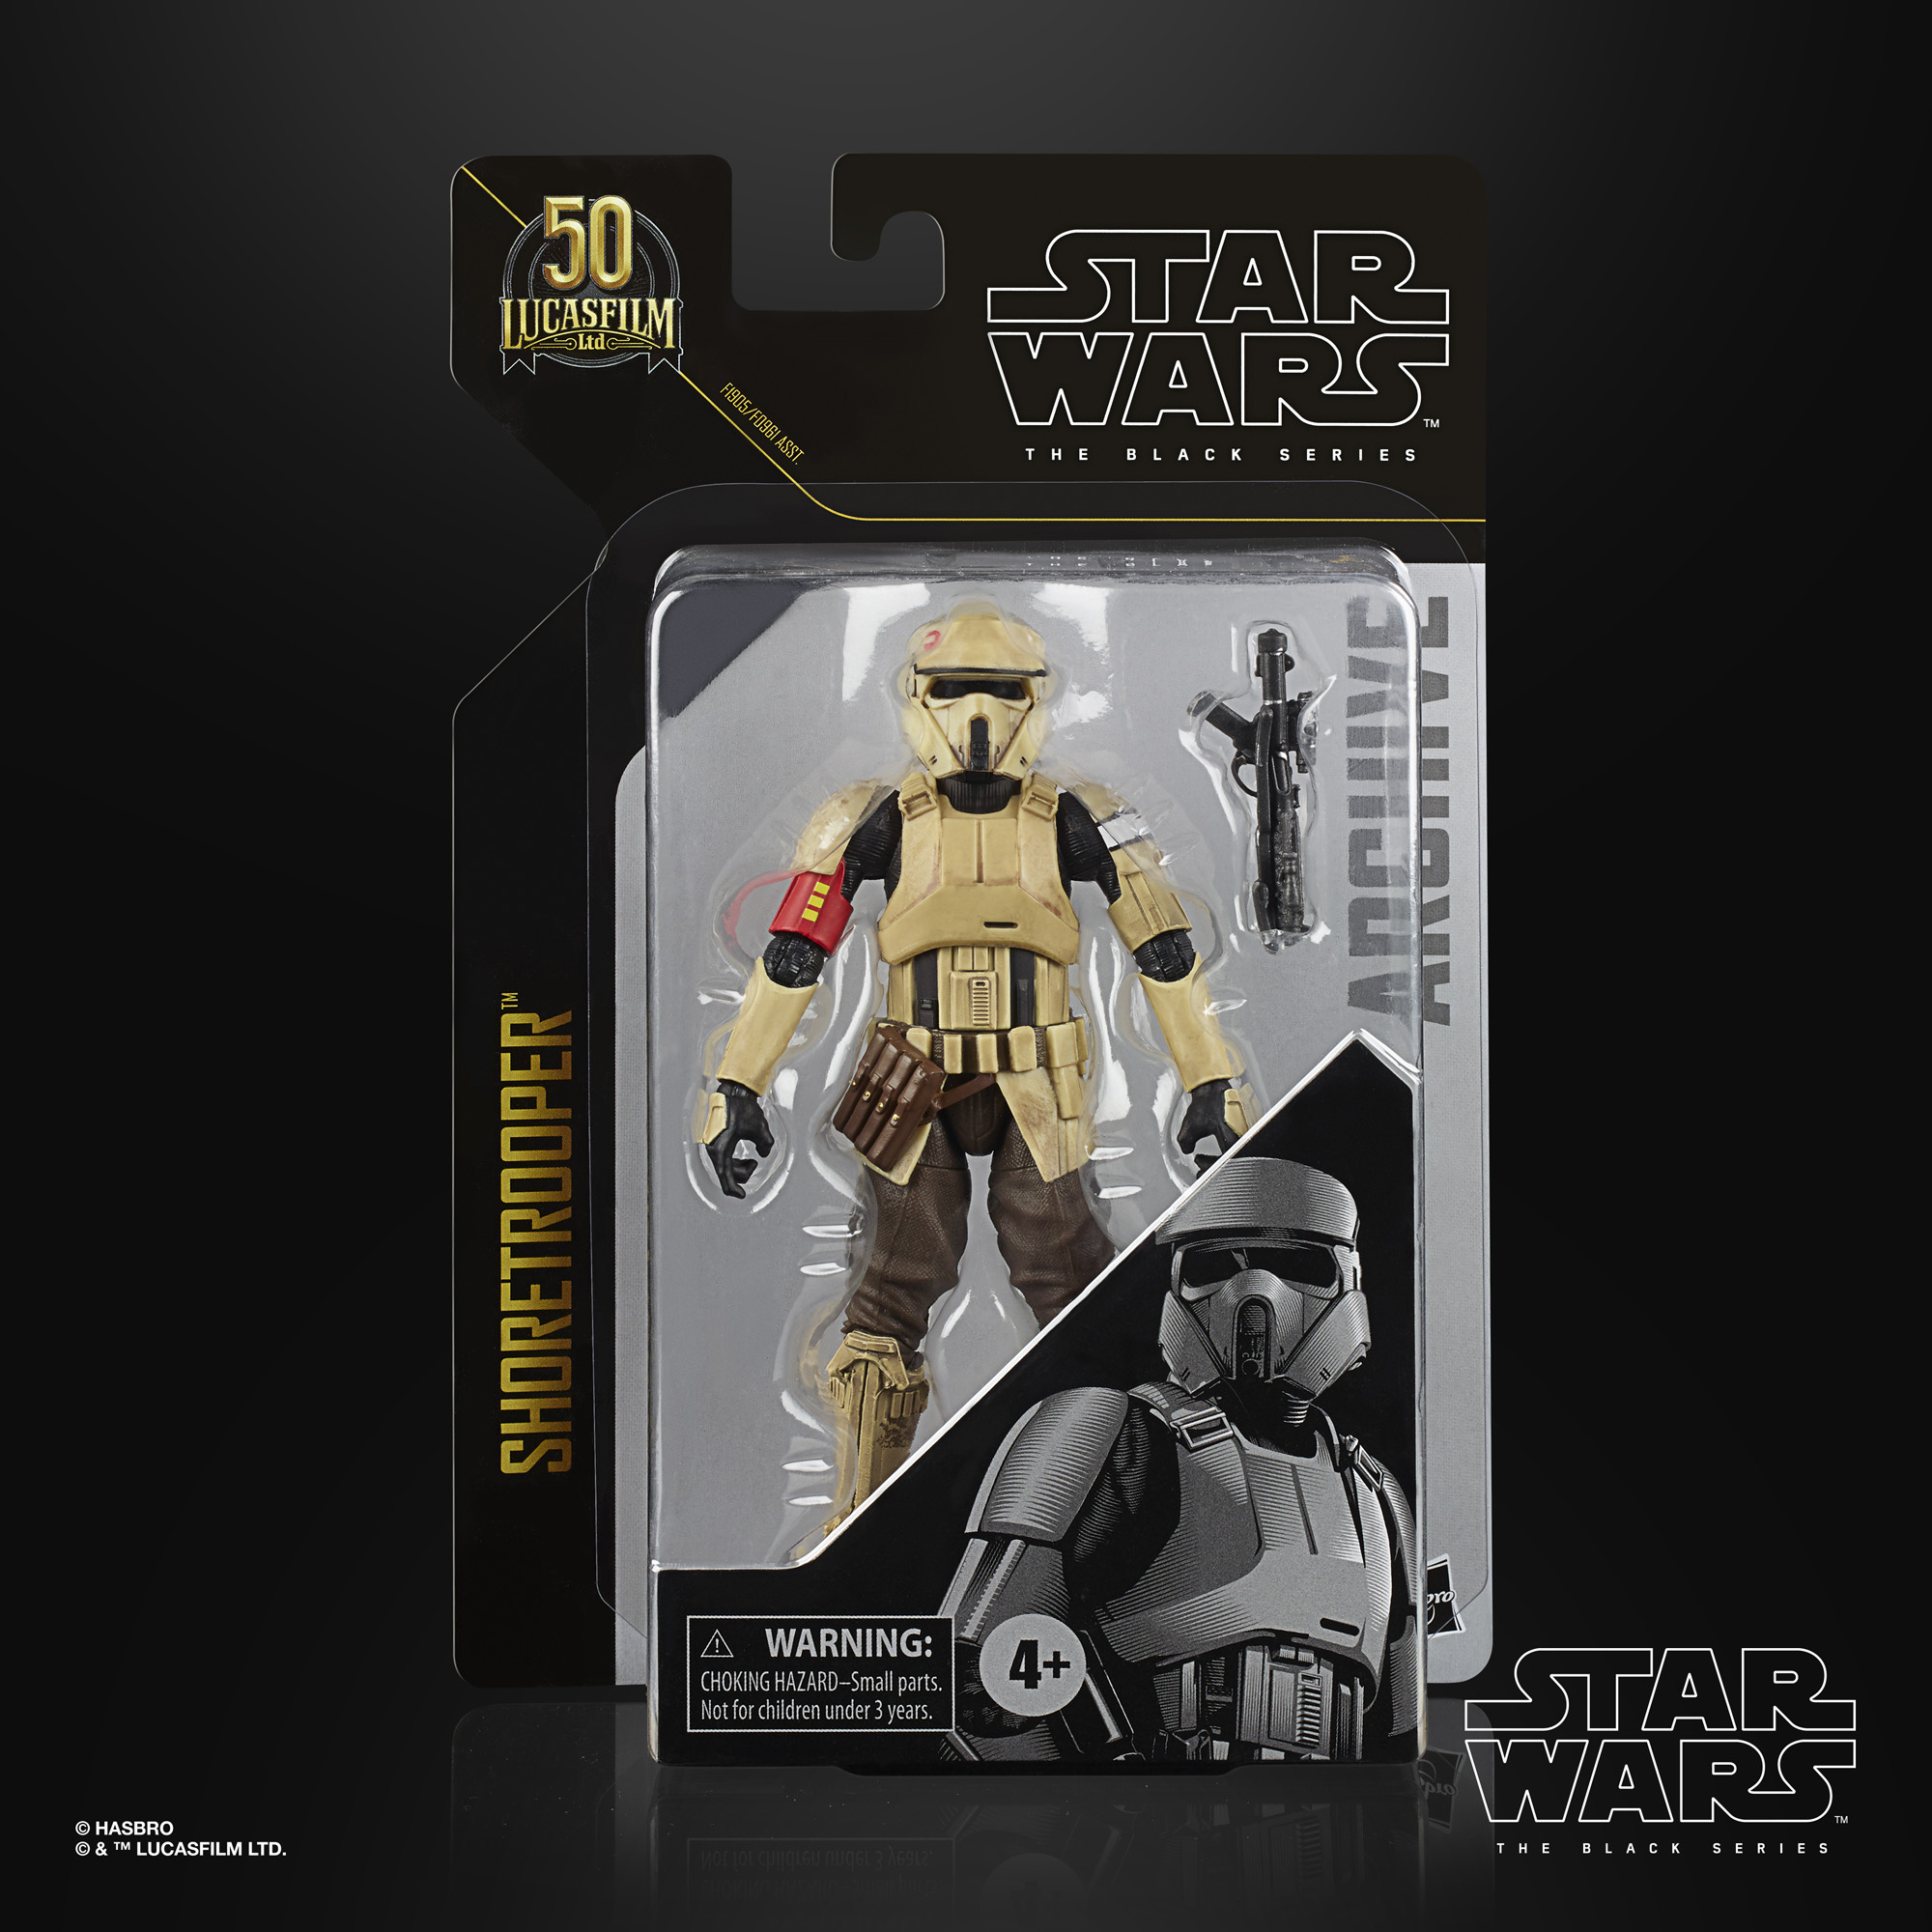 STAR WARS THE BLACK SERIES ARCHIVE 6-INCH SHORETROOPER Figure – in pck (1)